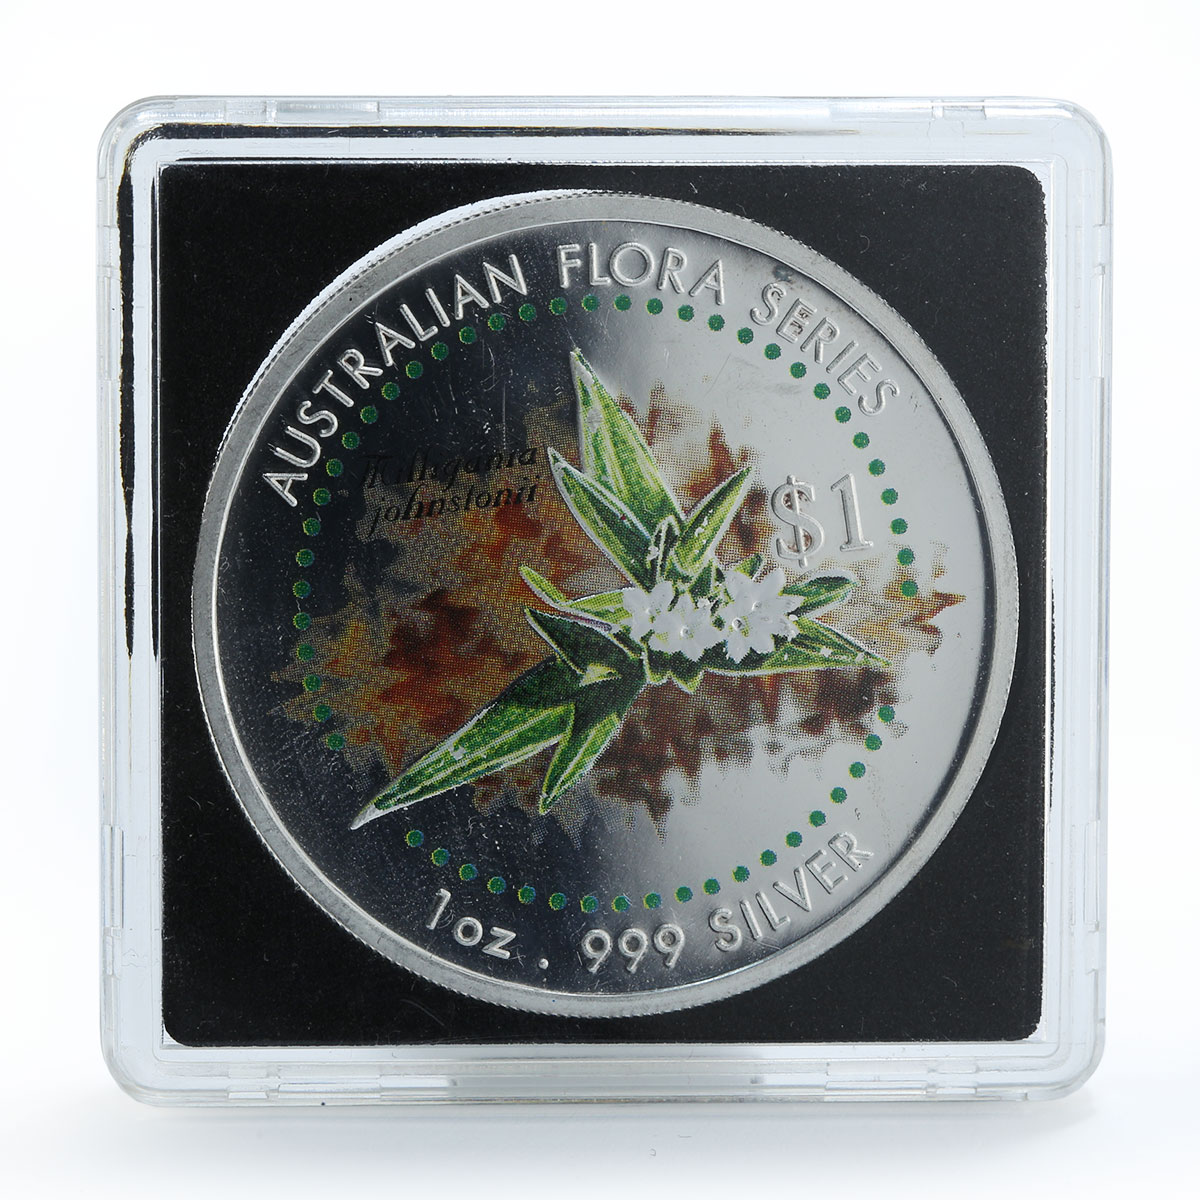 Cook Islands 1 dollar Tilligania johnstoni Australian flora 1oz silver coin 1999